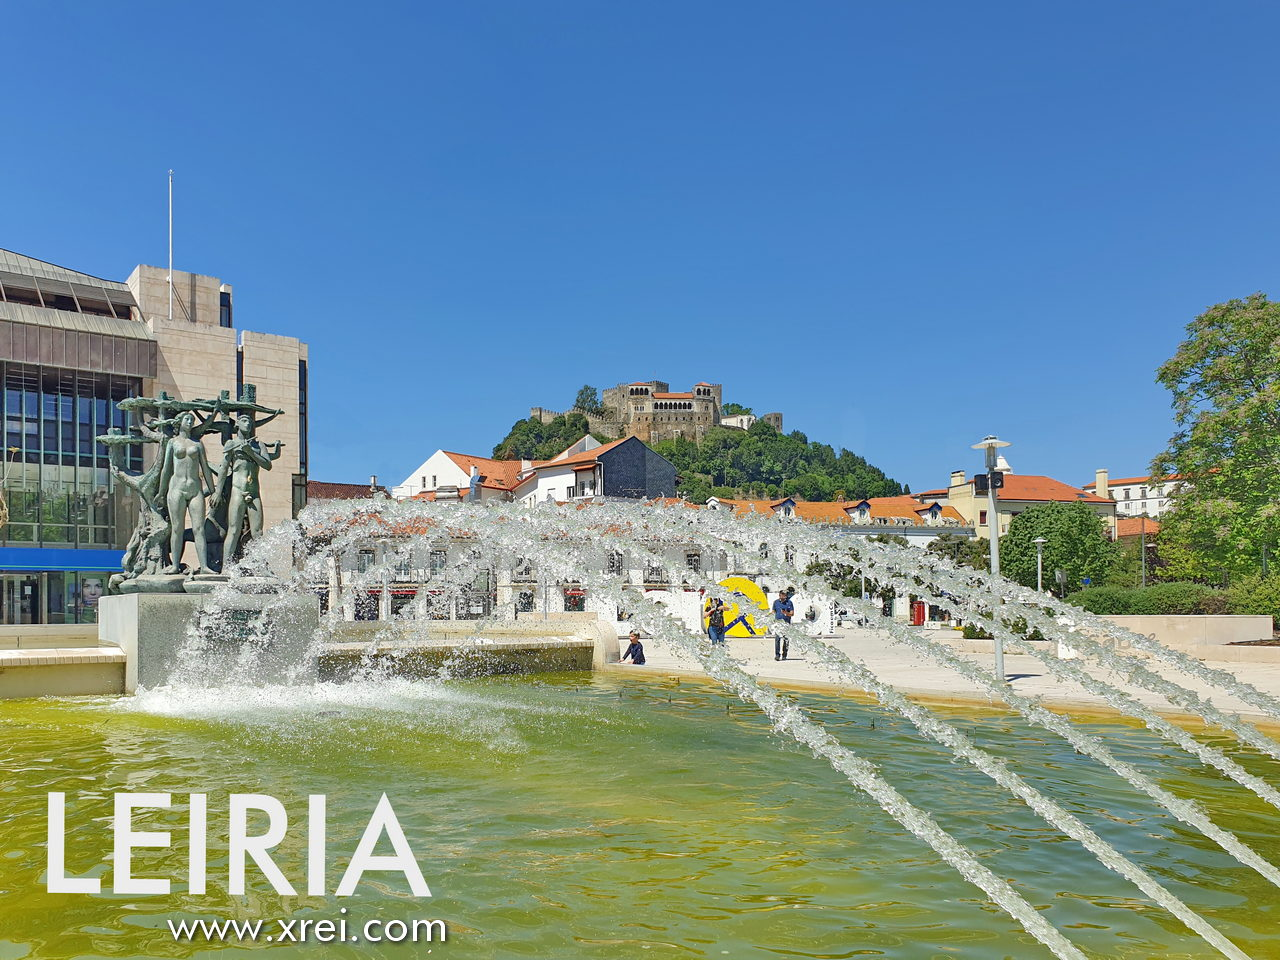 """Praça Damião Goa Damão e Diu, with the light source in the center of the city of Leiria, the bronze sculpture, alluding to the Lena and Lis Rivers, Lena being a tributary of the Lis that is born in Serra Daire and empties """"in the city of Leiria"""" , while Lis is born near Leiria, in the place of Fontes, in the parish of Cortes, it crosses the city and will flow into the Atlantic north of Praia da Viera de Leiria."""